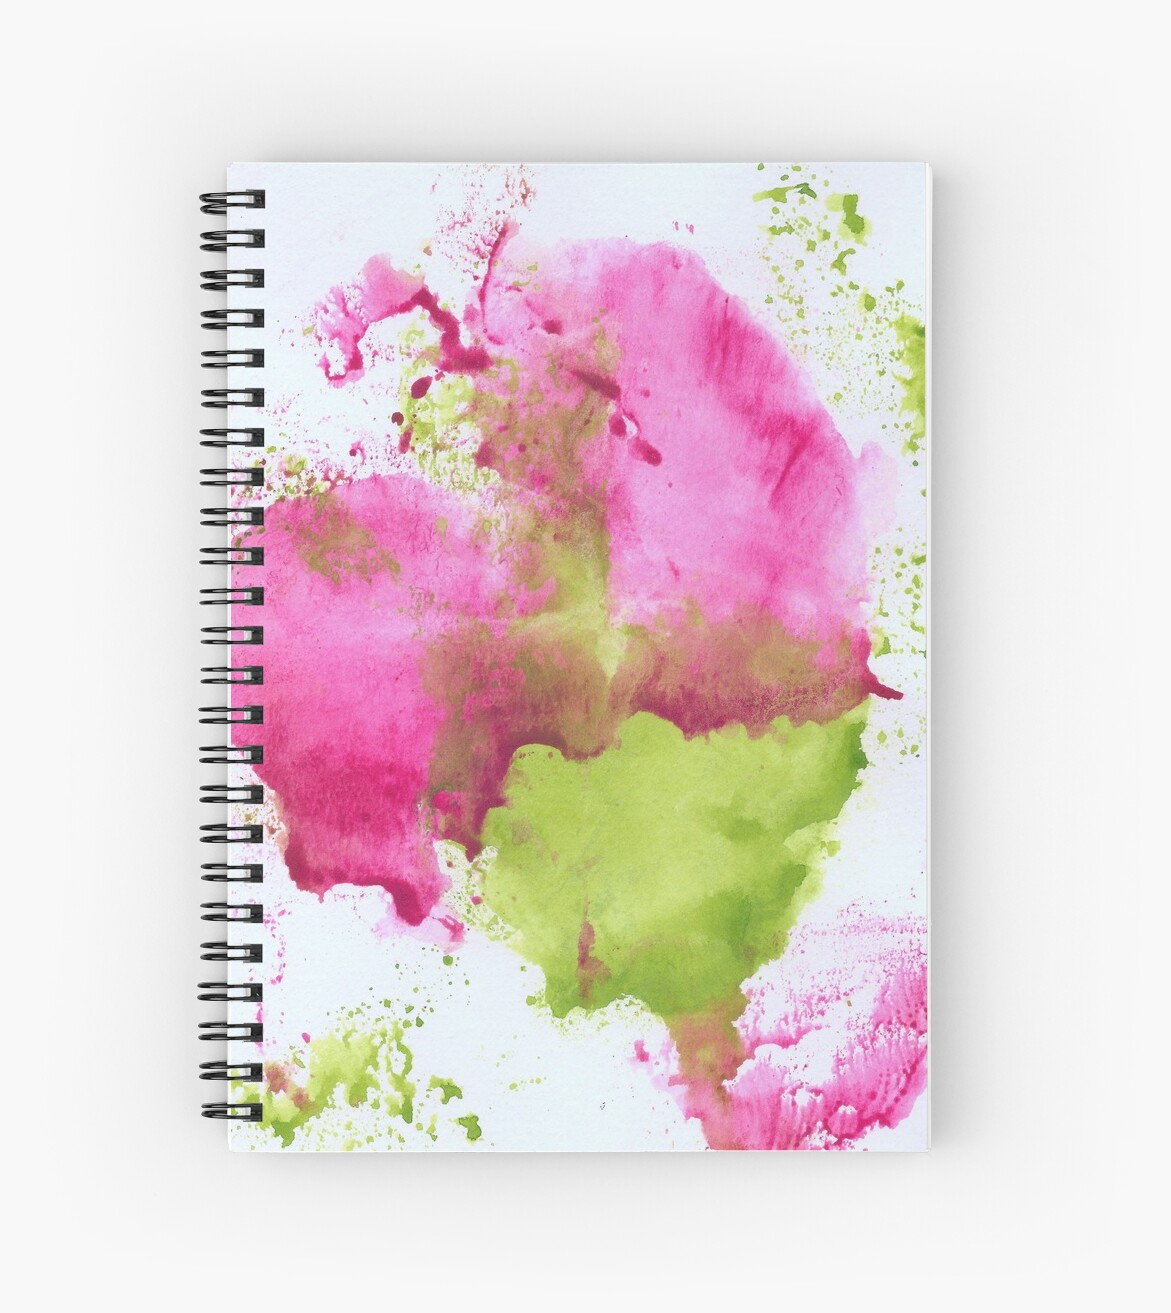 Pink and Green Splotch by Tiare Smith